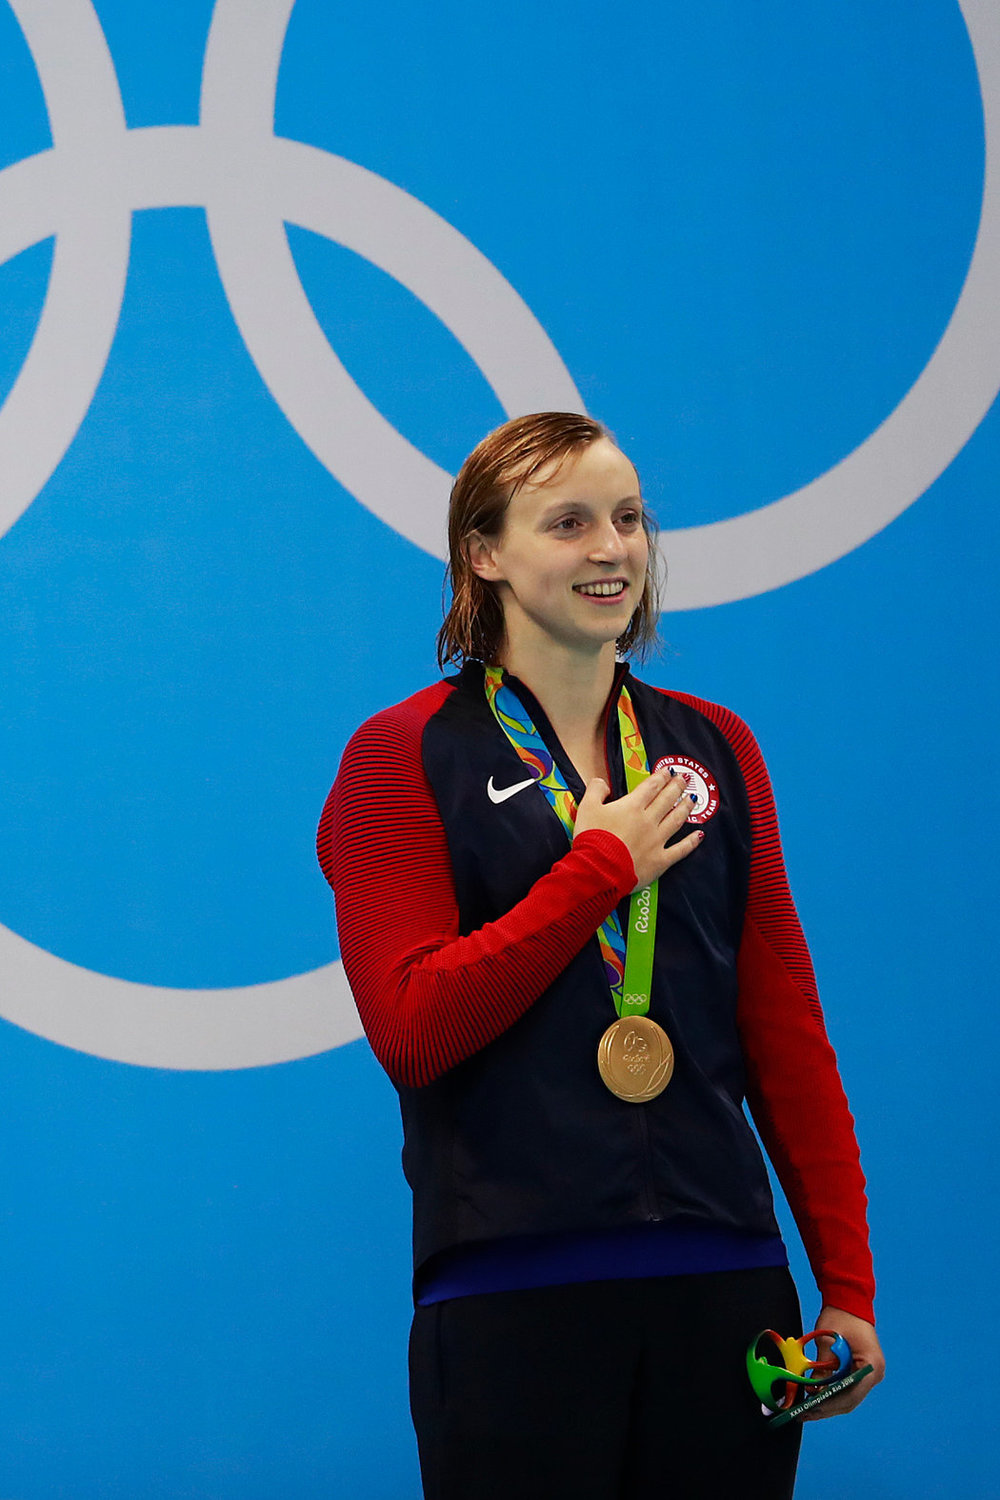 USA swimmer Katie Ledecky stands proudly with her Rio Olympic Gold Medal.